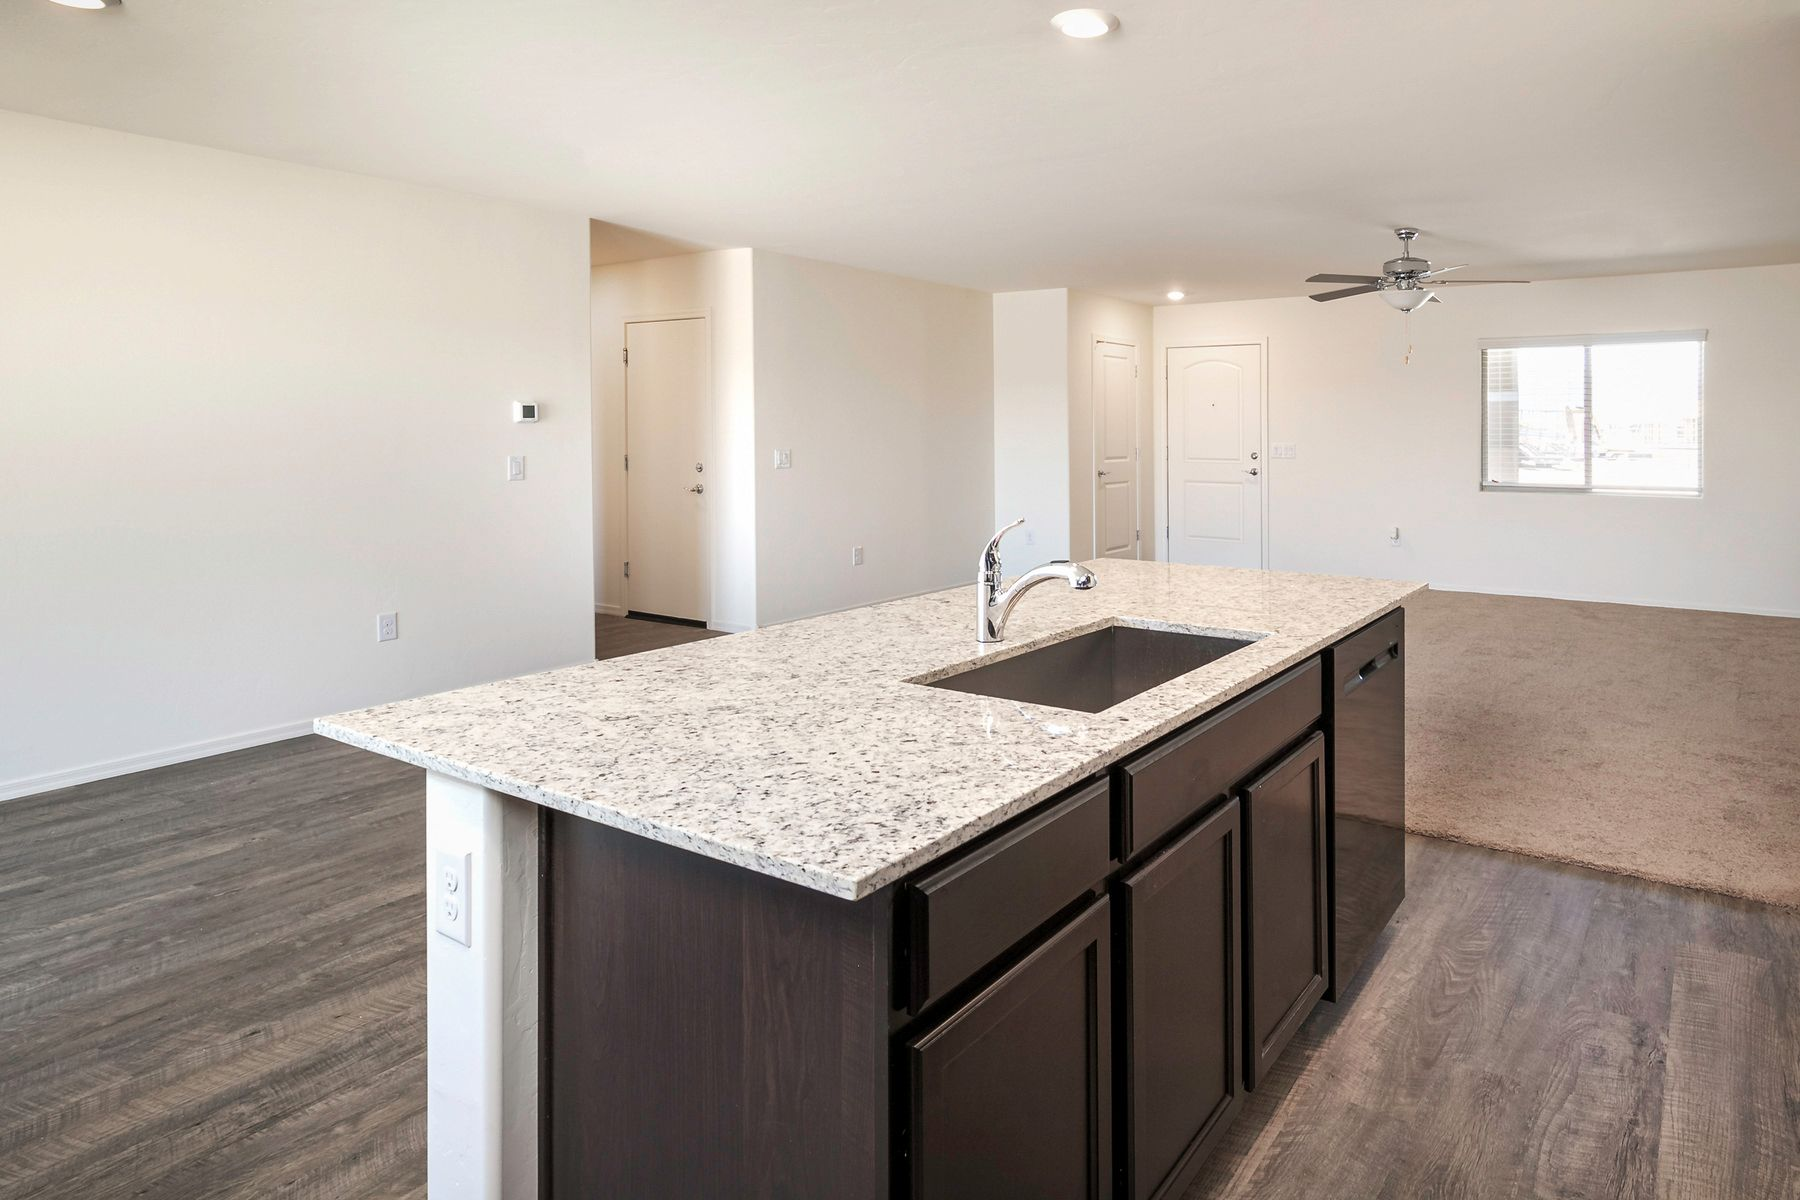 Kitchen featured in the Luna By LGI Homes in Tucson, AZ